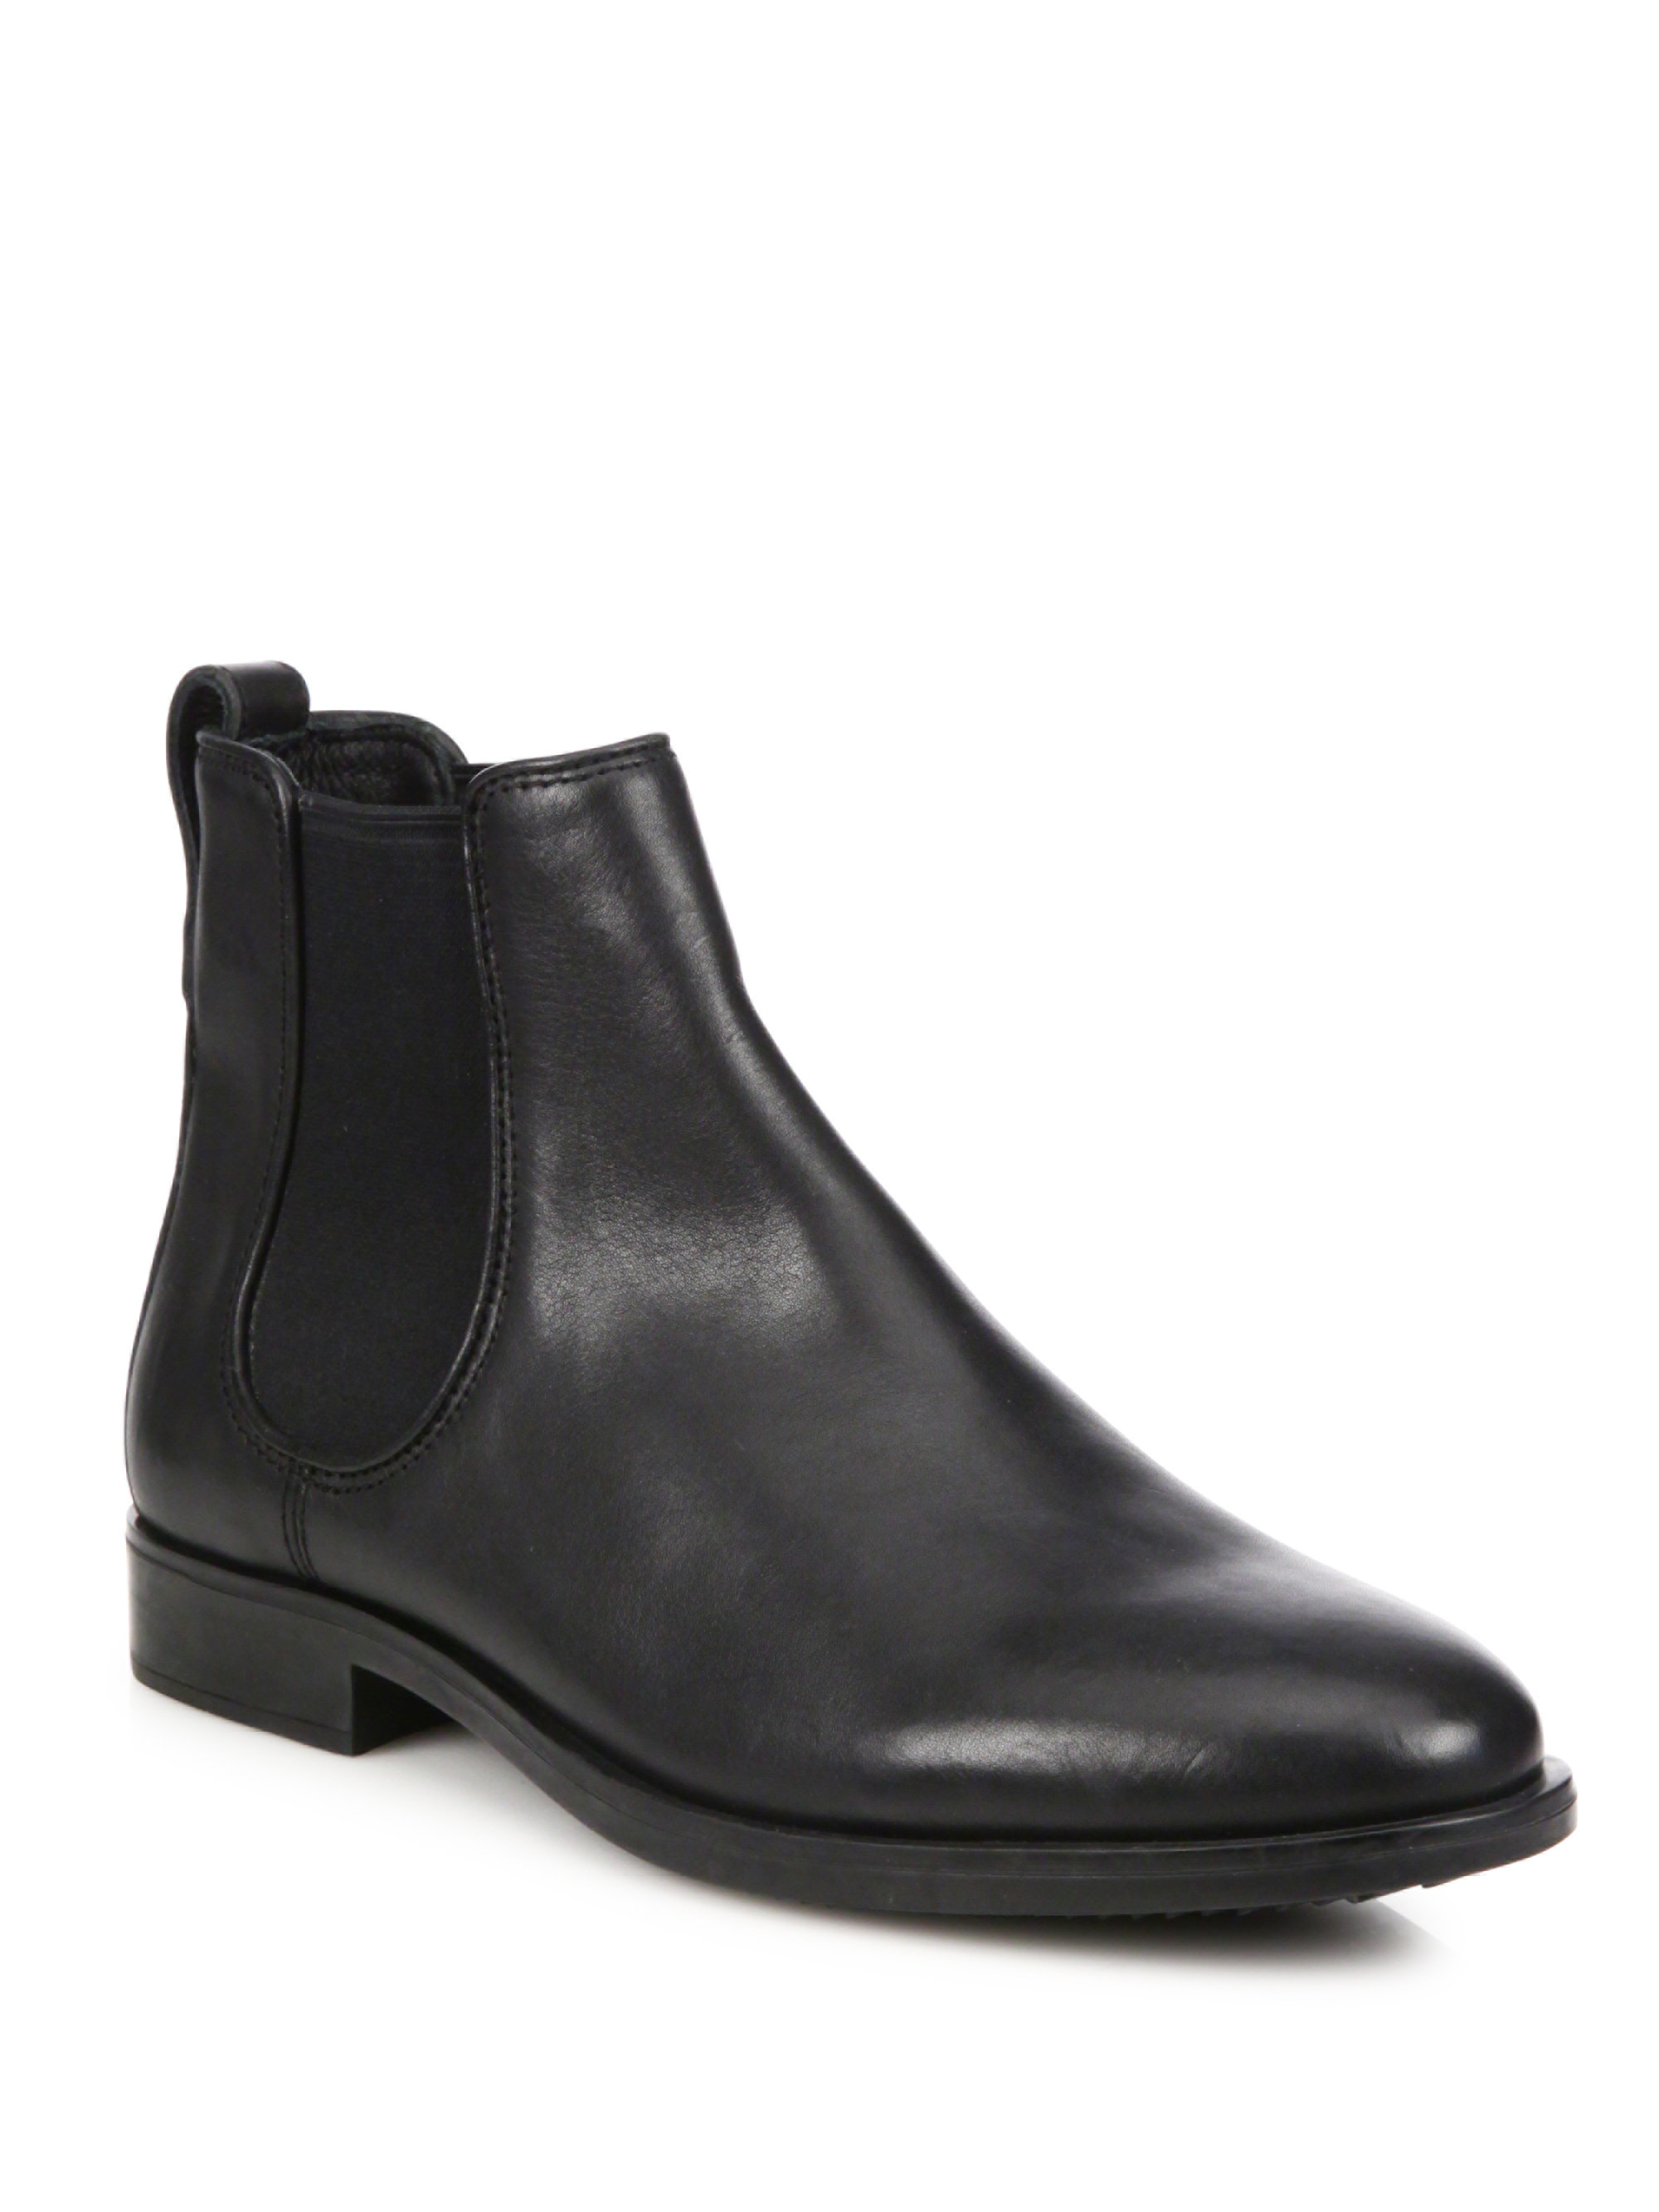 Lyst Coach Claremont Chelsea Boots In Black For Men